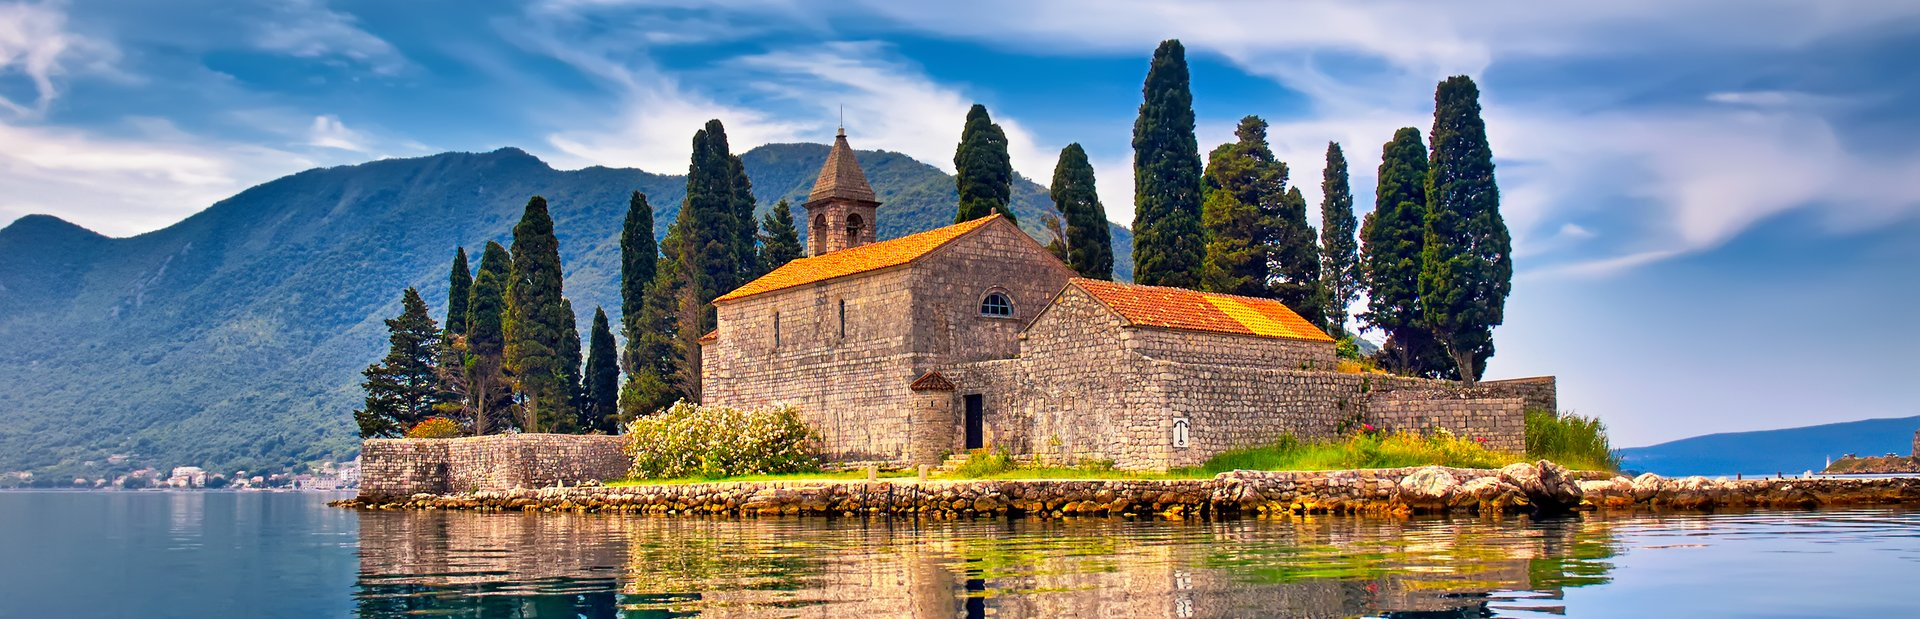 Things to see & do in the East Mediterranean